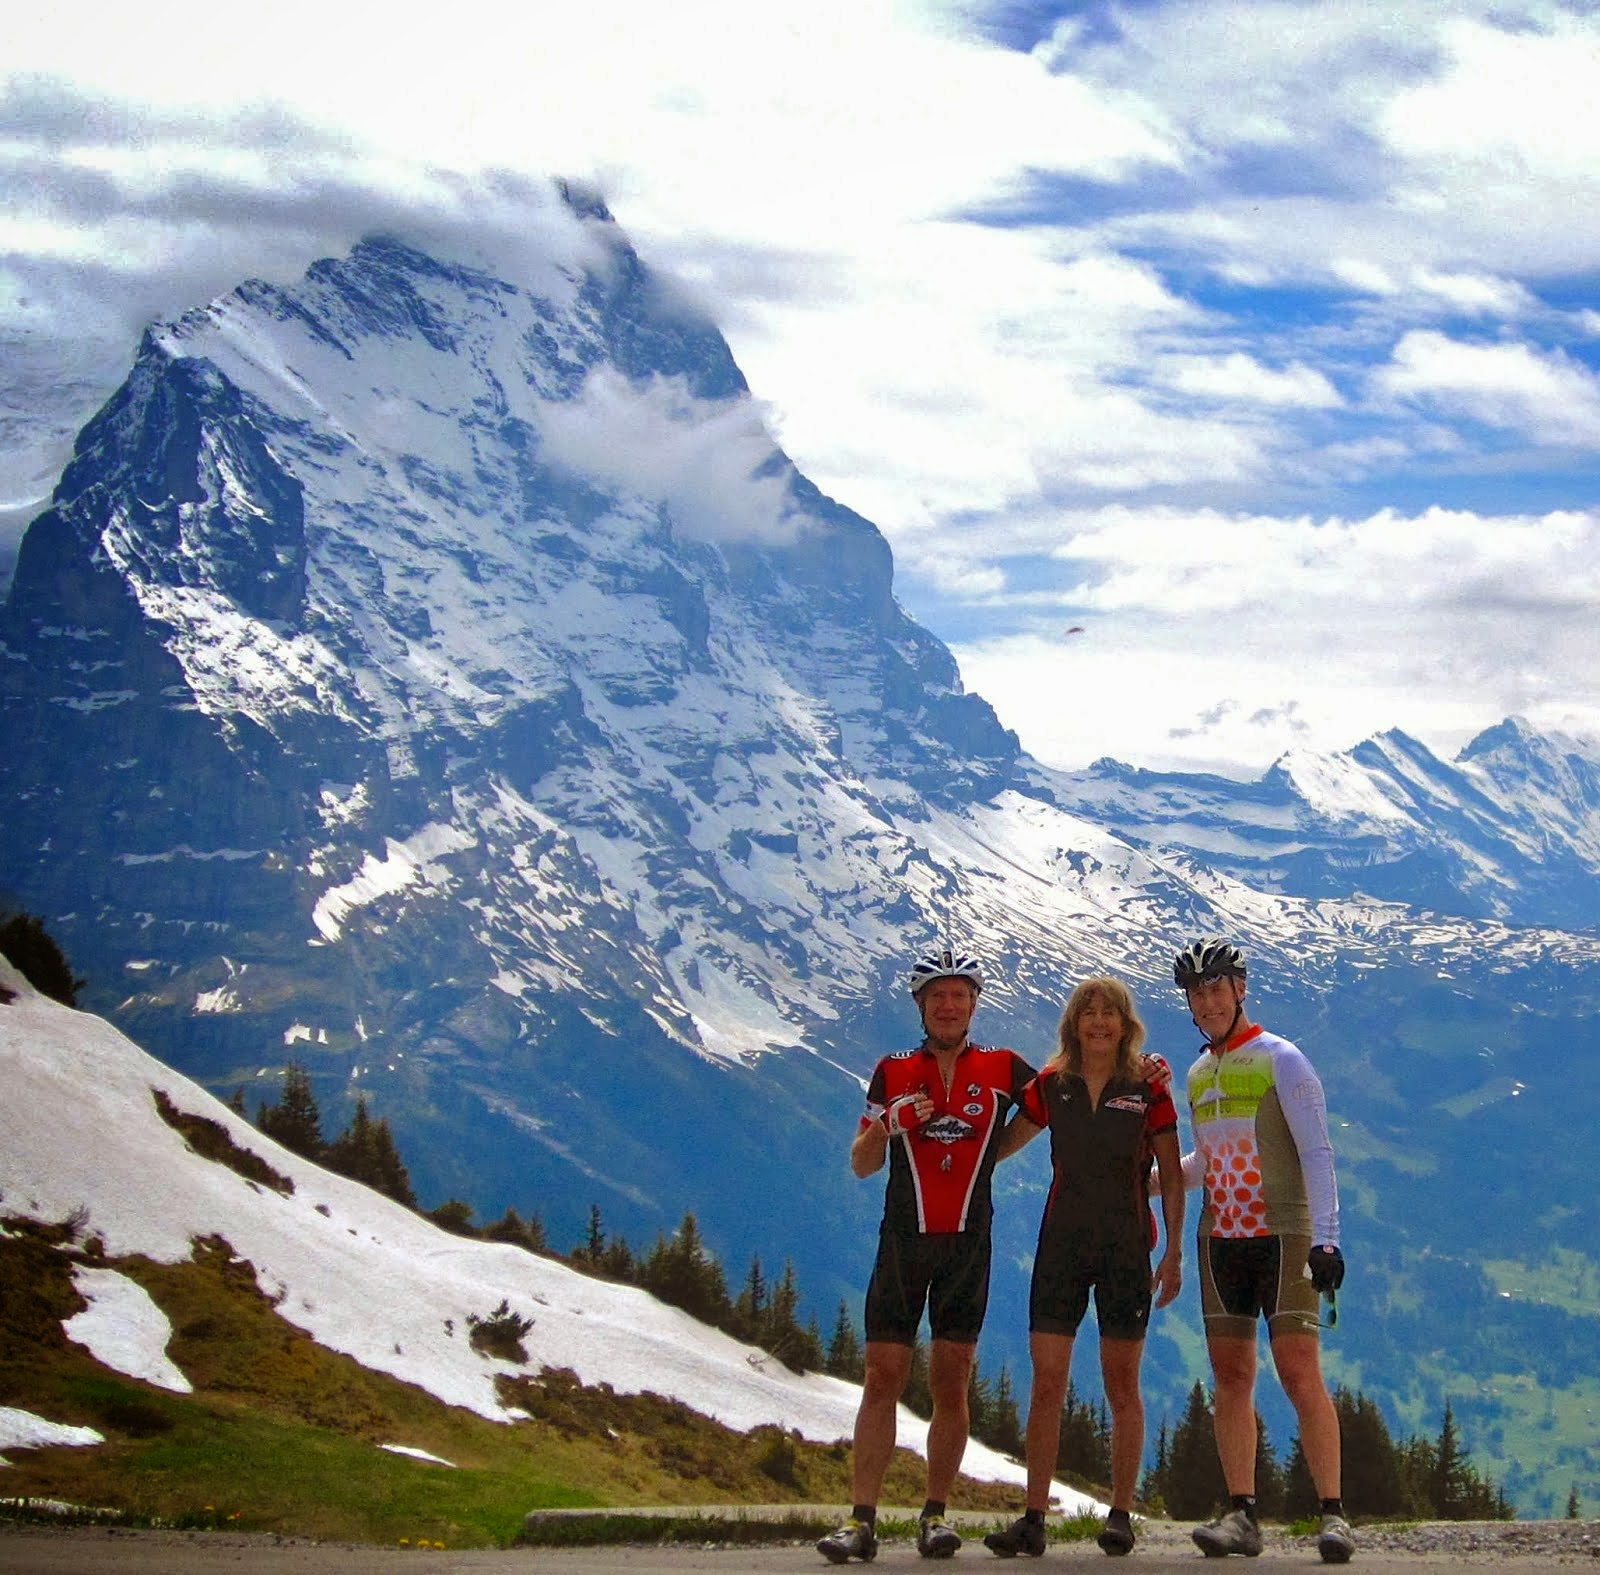 WITH THE EIGER